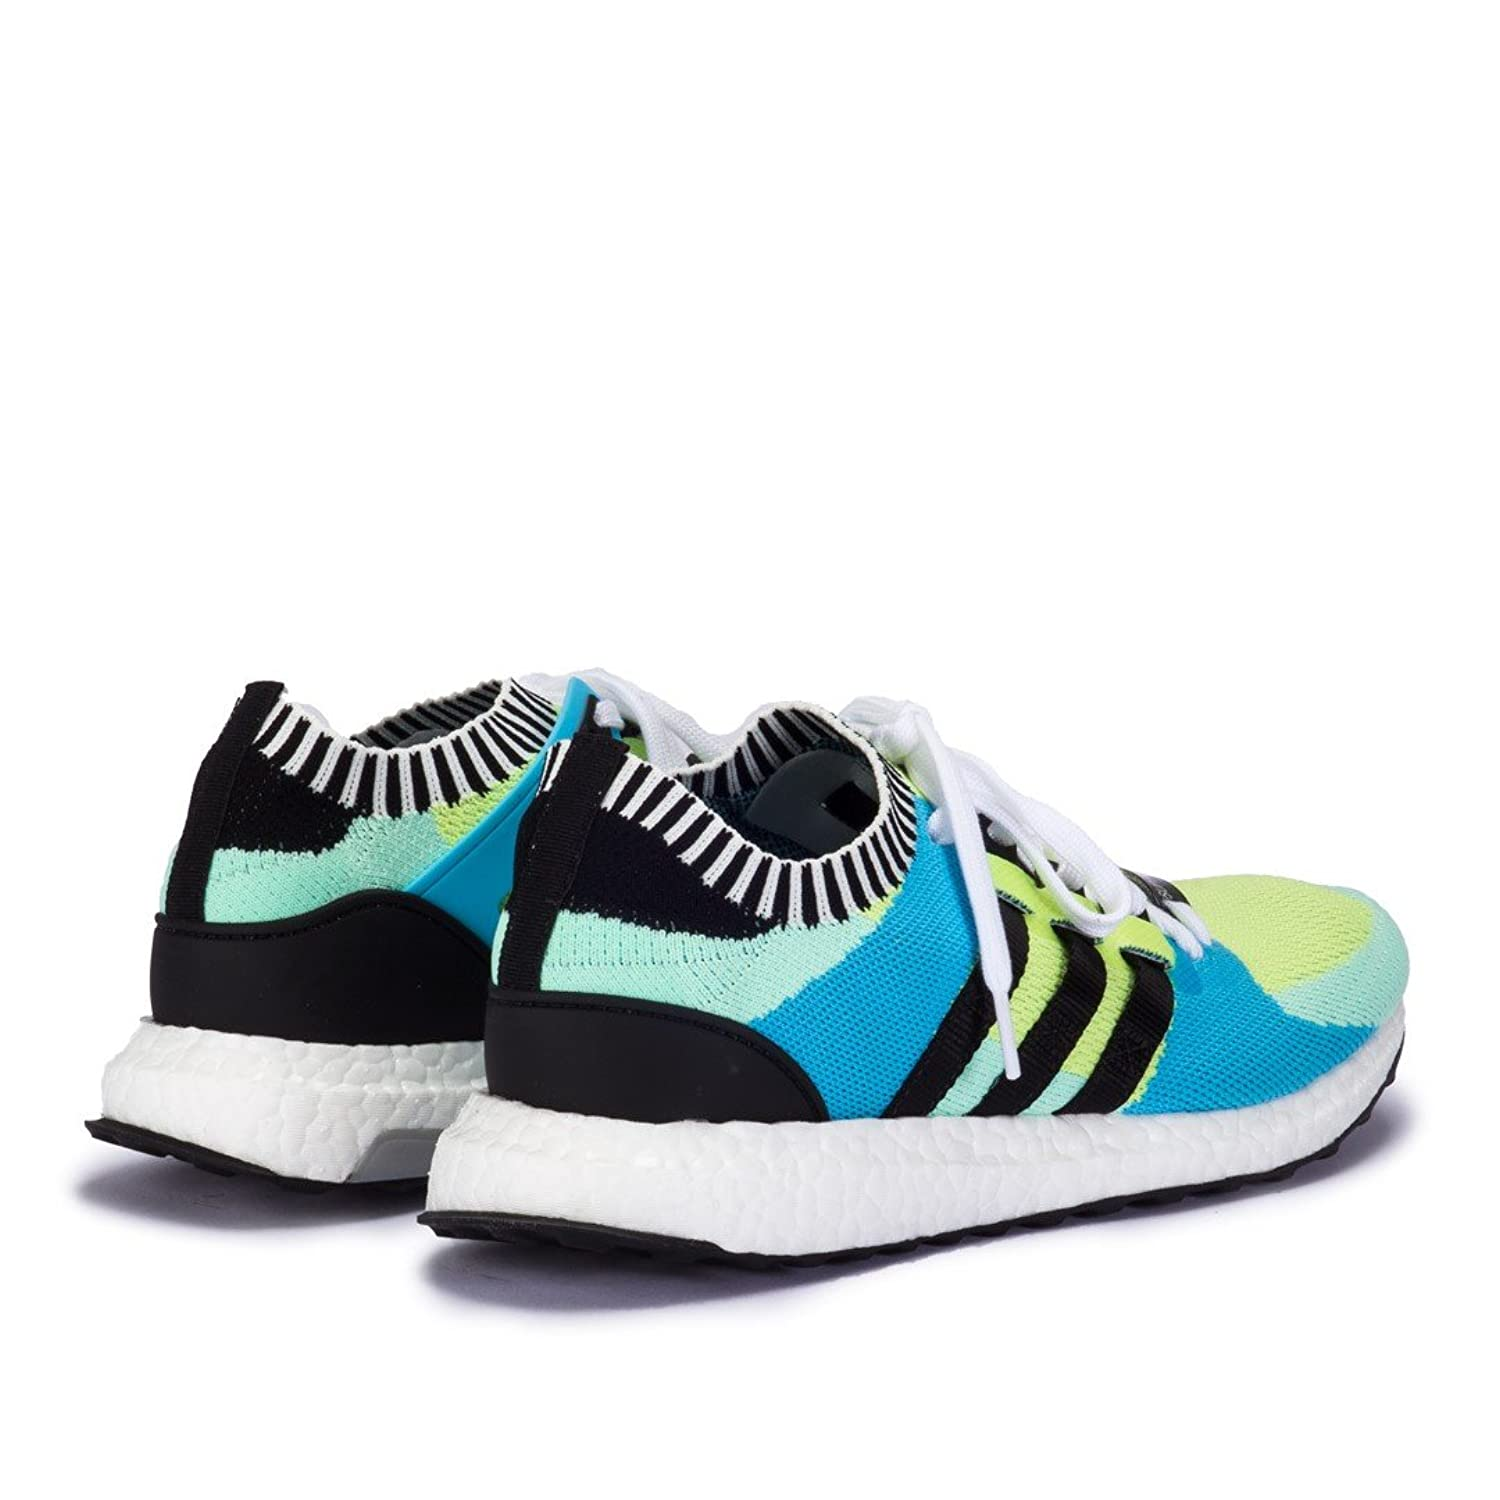 adidas eqt support ultra pk frozen yellow